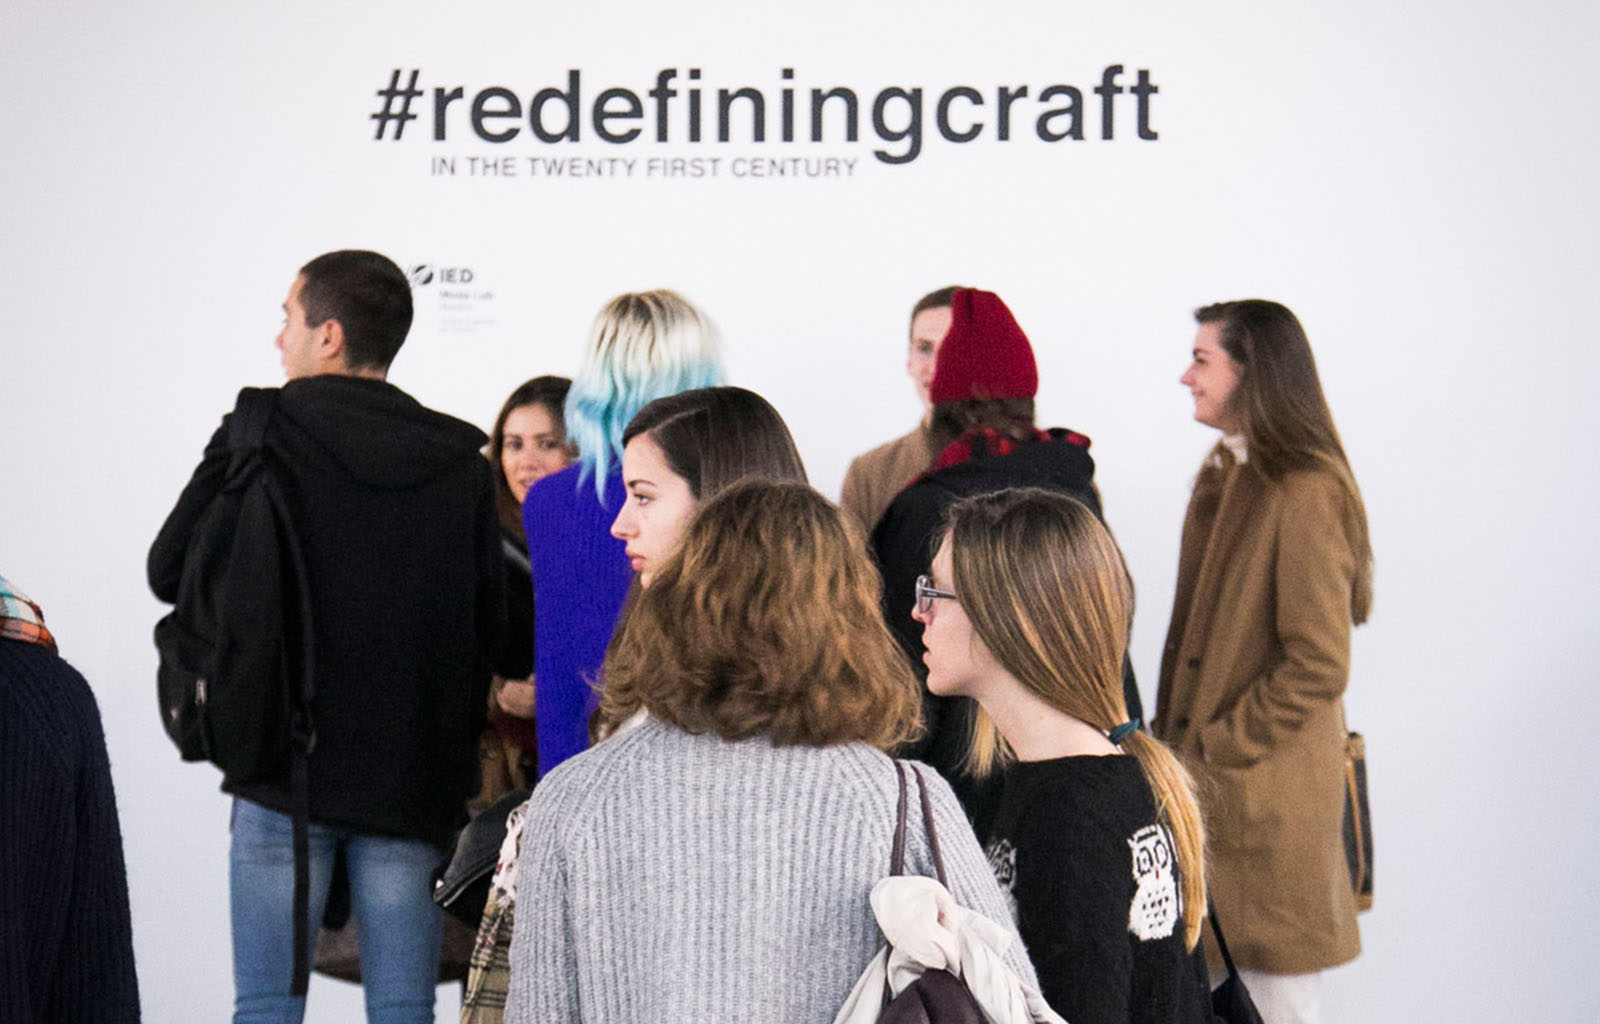 Redefining Craft in the Twenty First Century